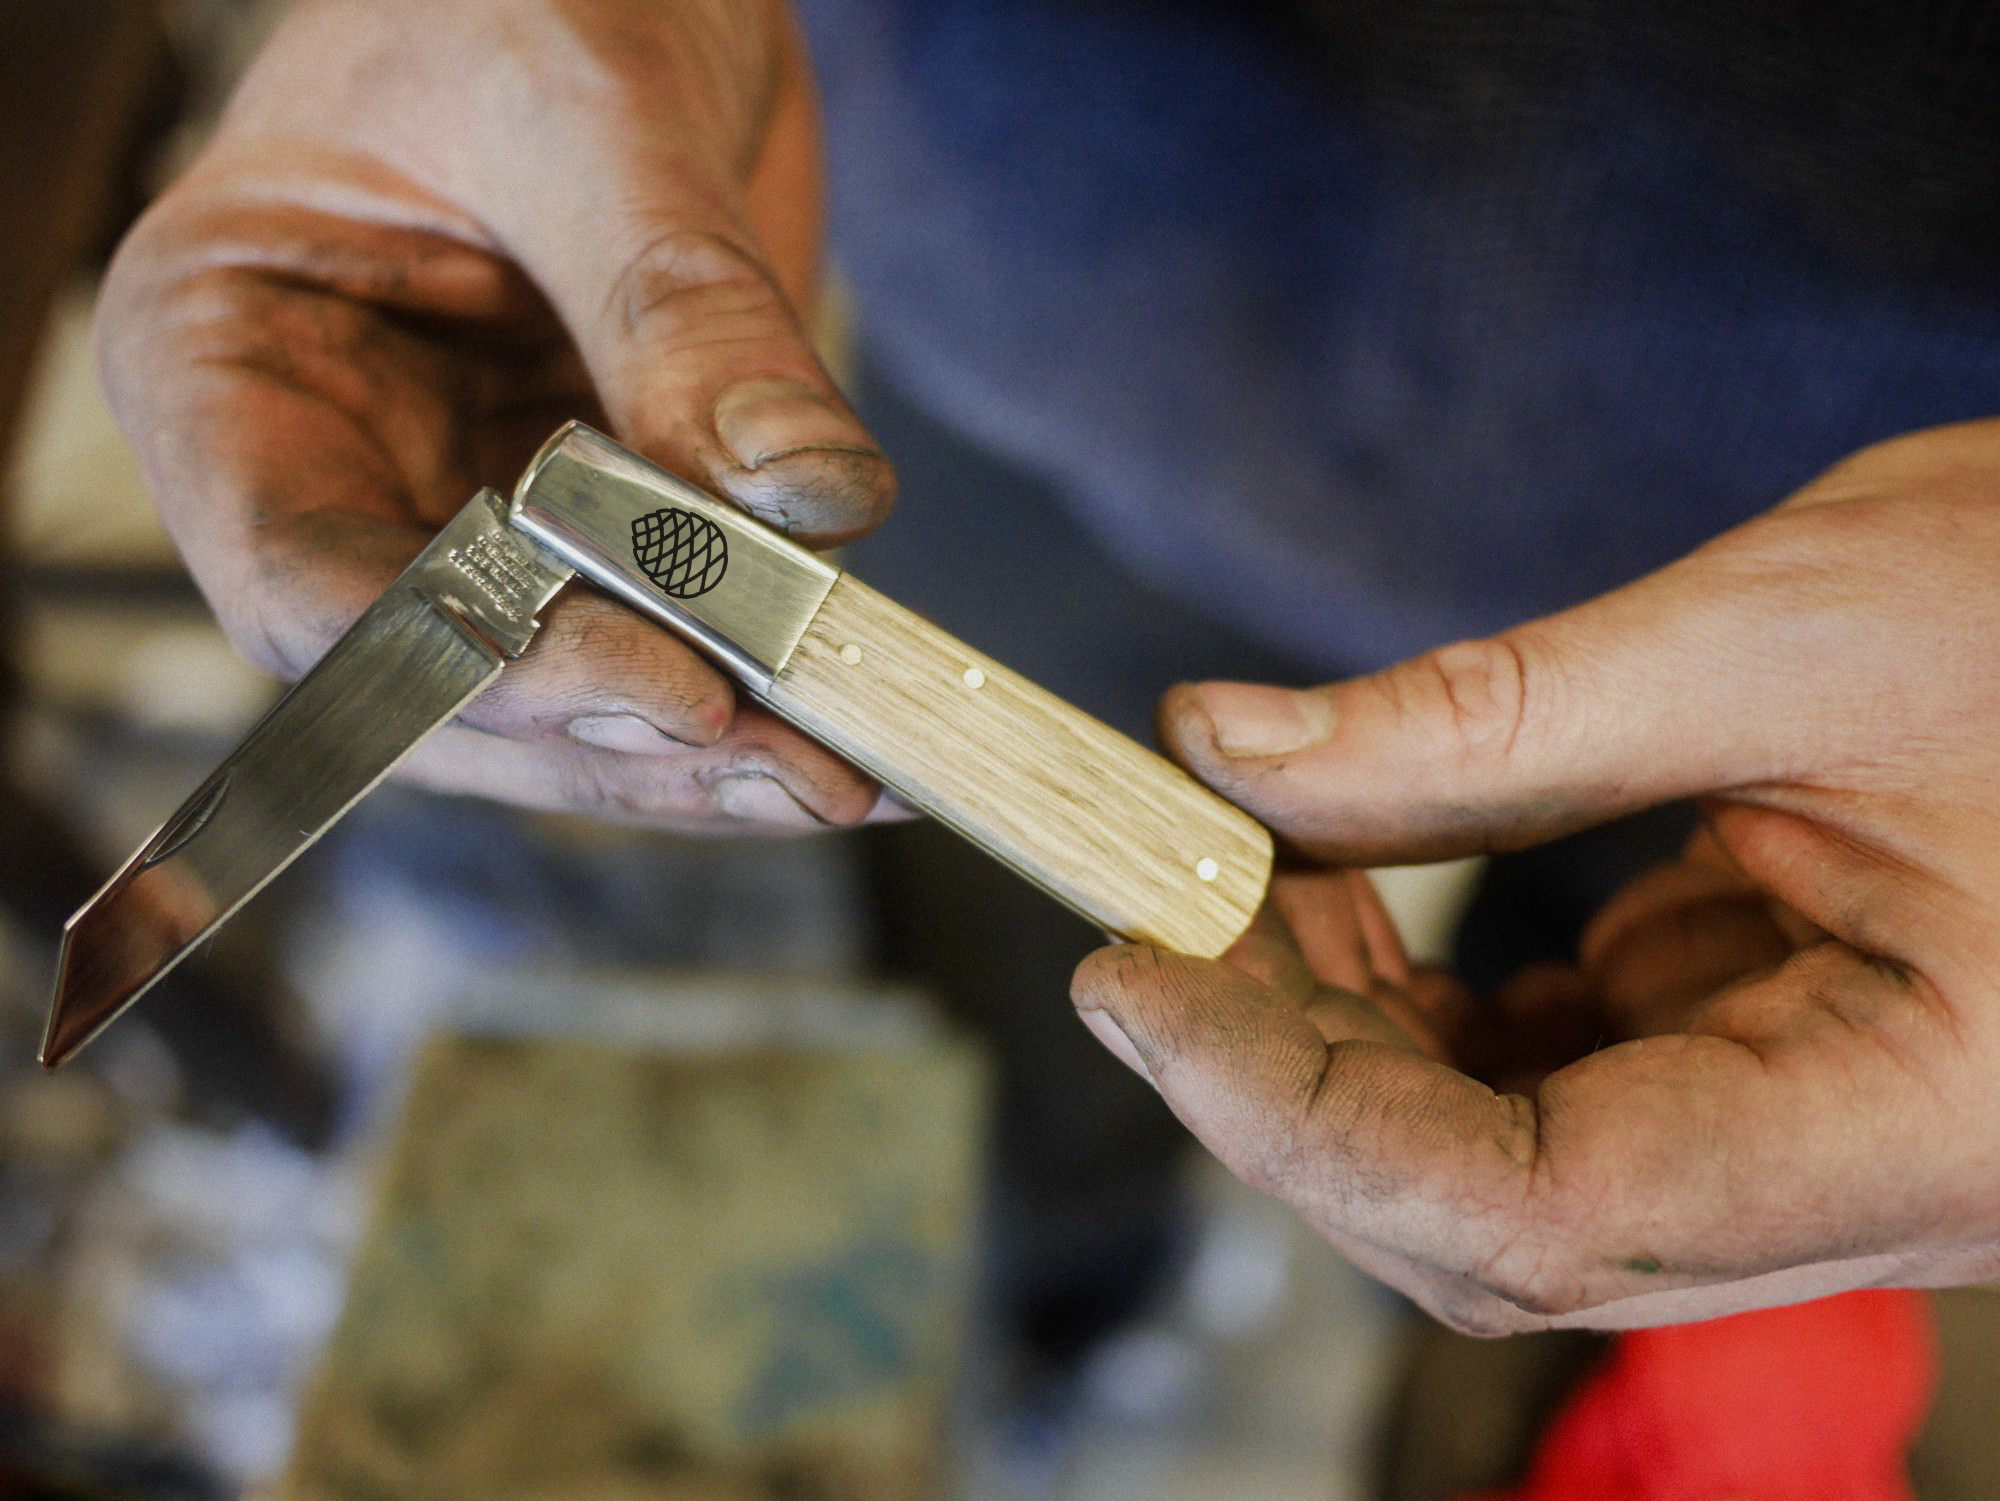 Sheffield Pocket tool The Level Collective maker hands.jpg